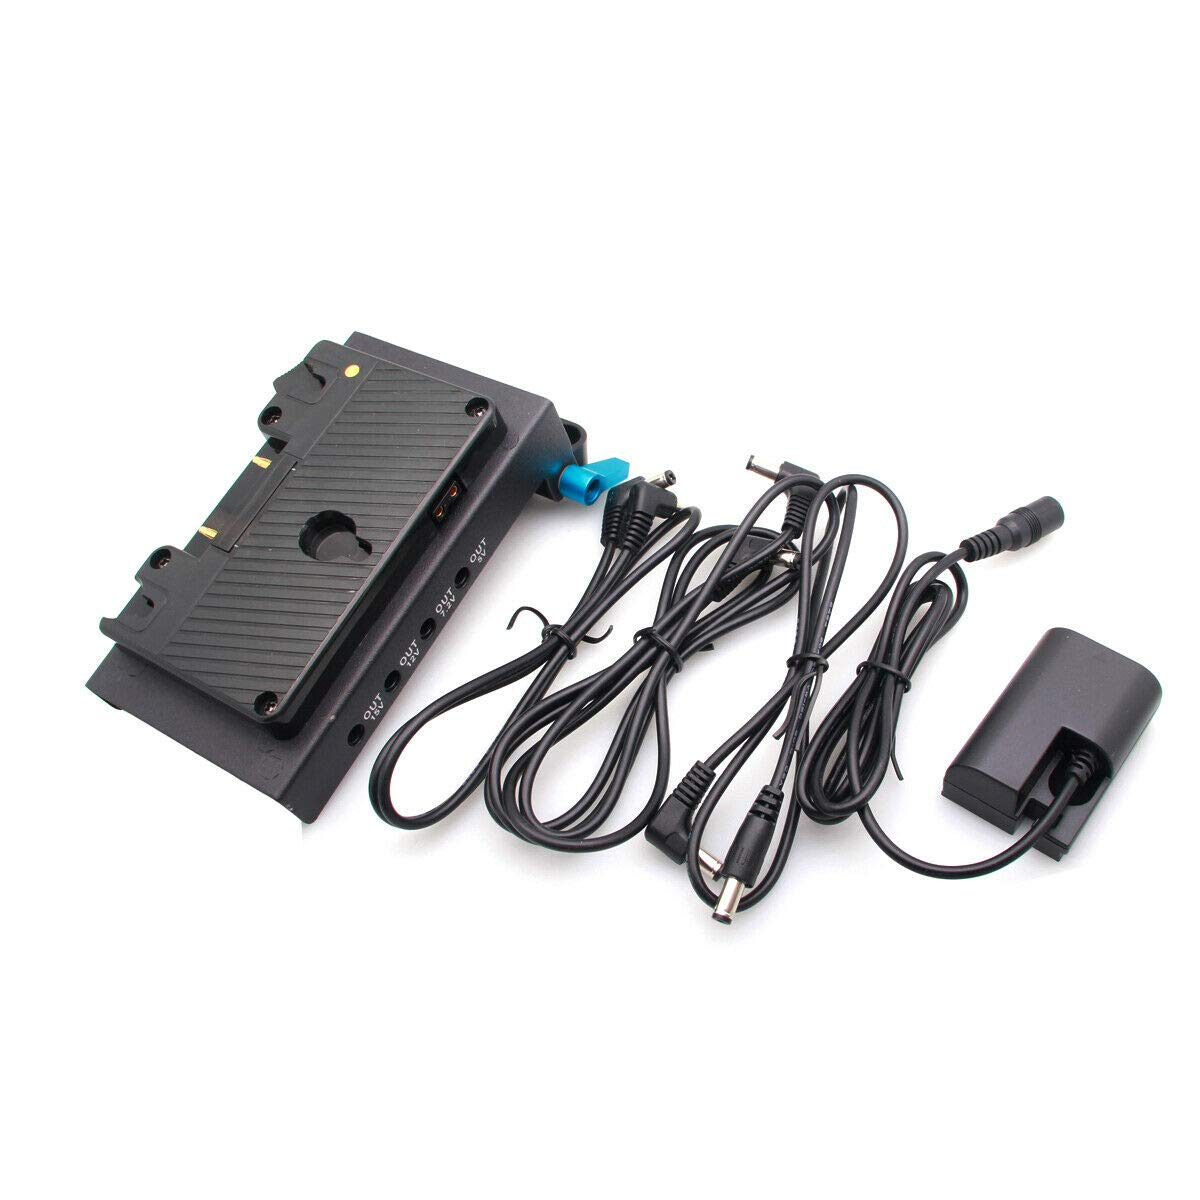 Runshuangyu Anton Bauer Gold Mount Power Supply Station with LP-E6 Dummy Battery Pack & 15mm Rod Clamp for Canon EOS 5D Mark II III IV, 7D, 6D, 60D,70D DSLR Camera